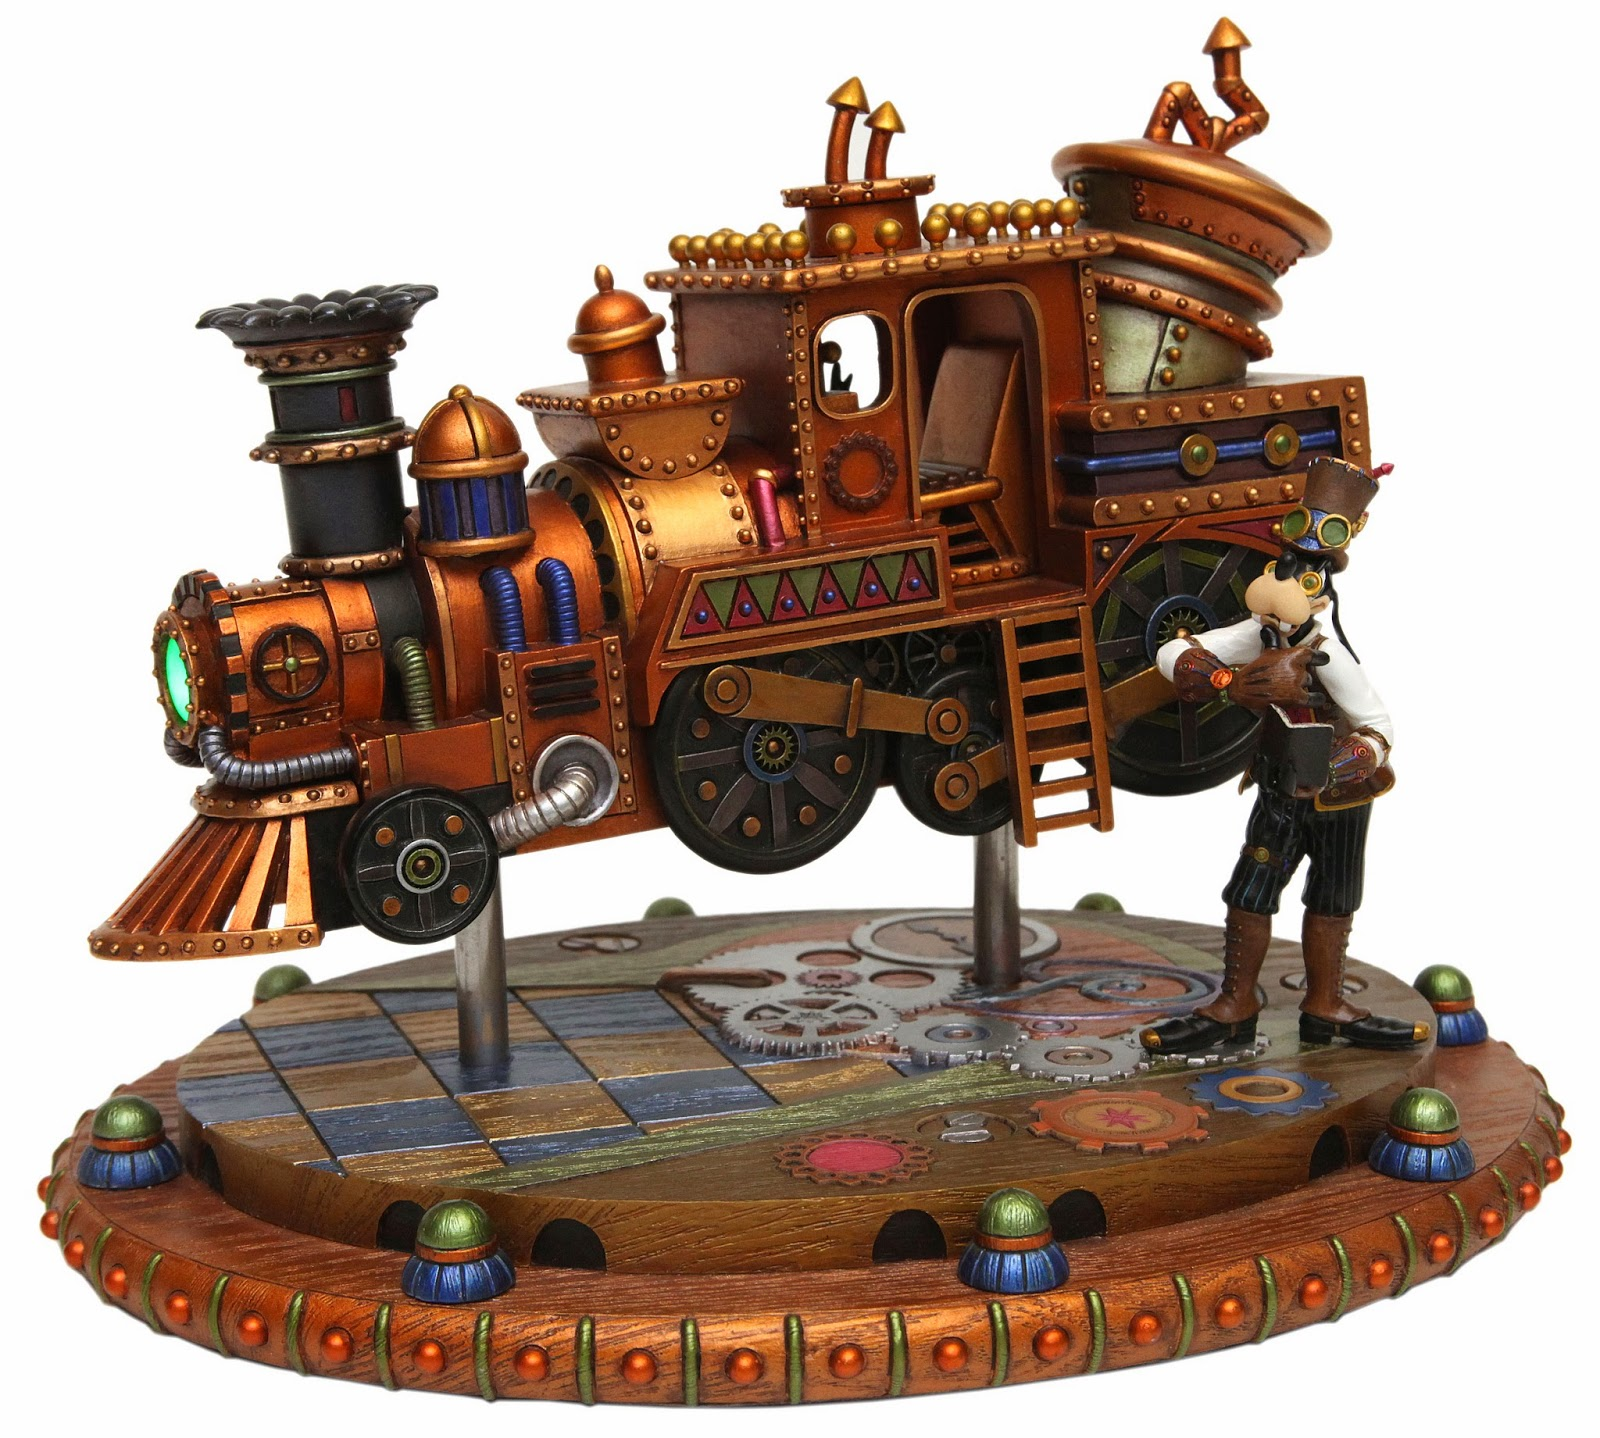 Goofy Train Mechanical Kingdom Figure Figurine Statue gears steampunk Walt Disney World WDW Disneyland